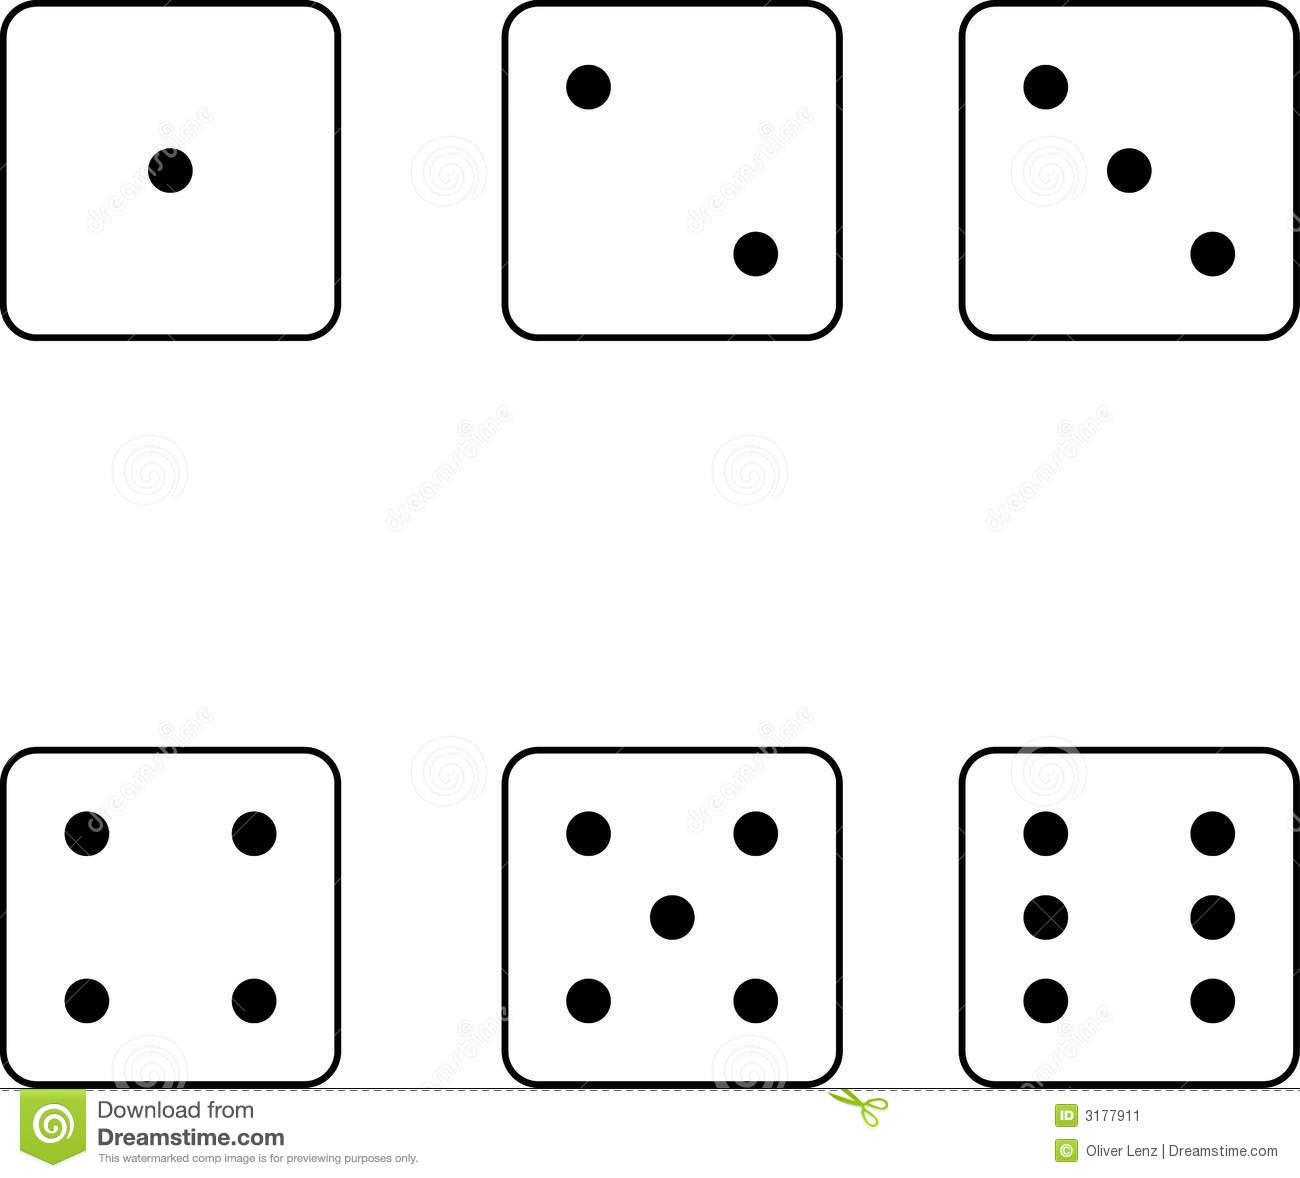 Rolling Dice Clipart